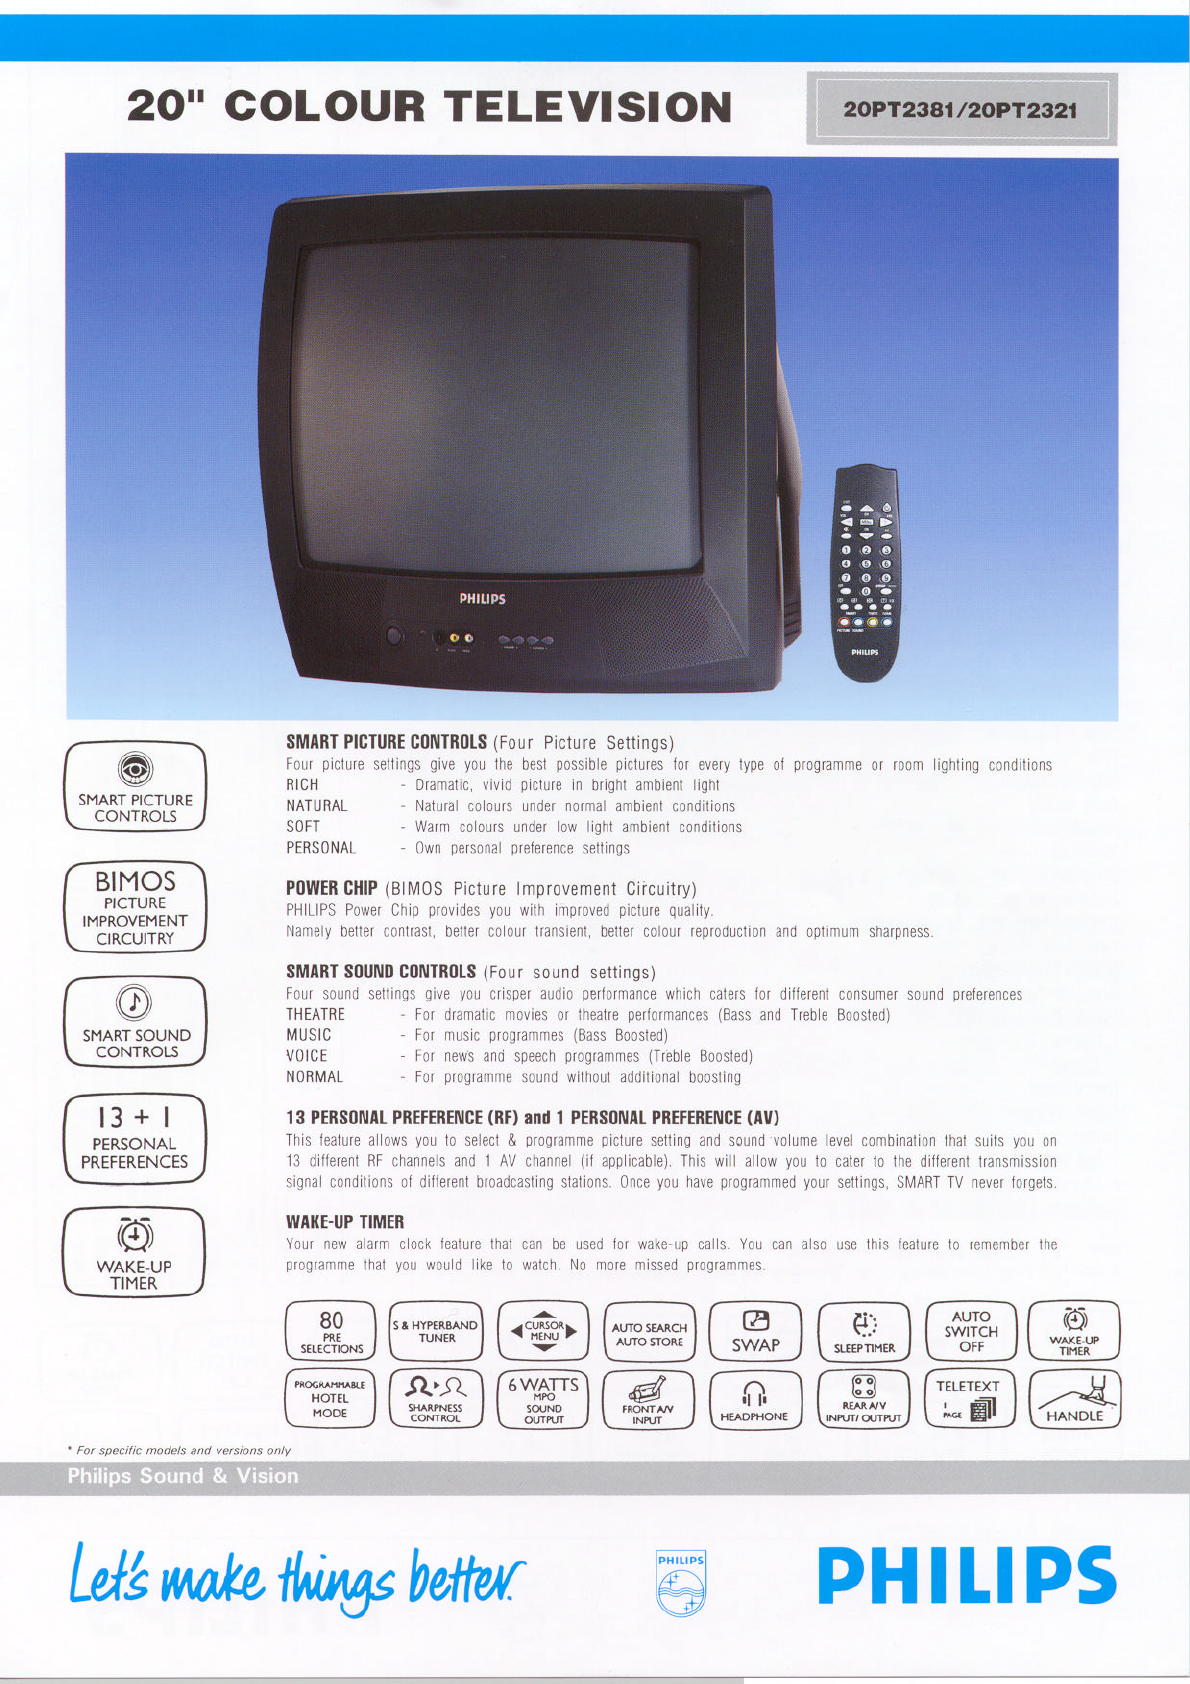 philips crt tv owners manual online user manual u2022 rh pandadigital co philips tv user guide philips tv user manual uk